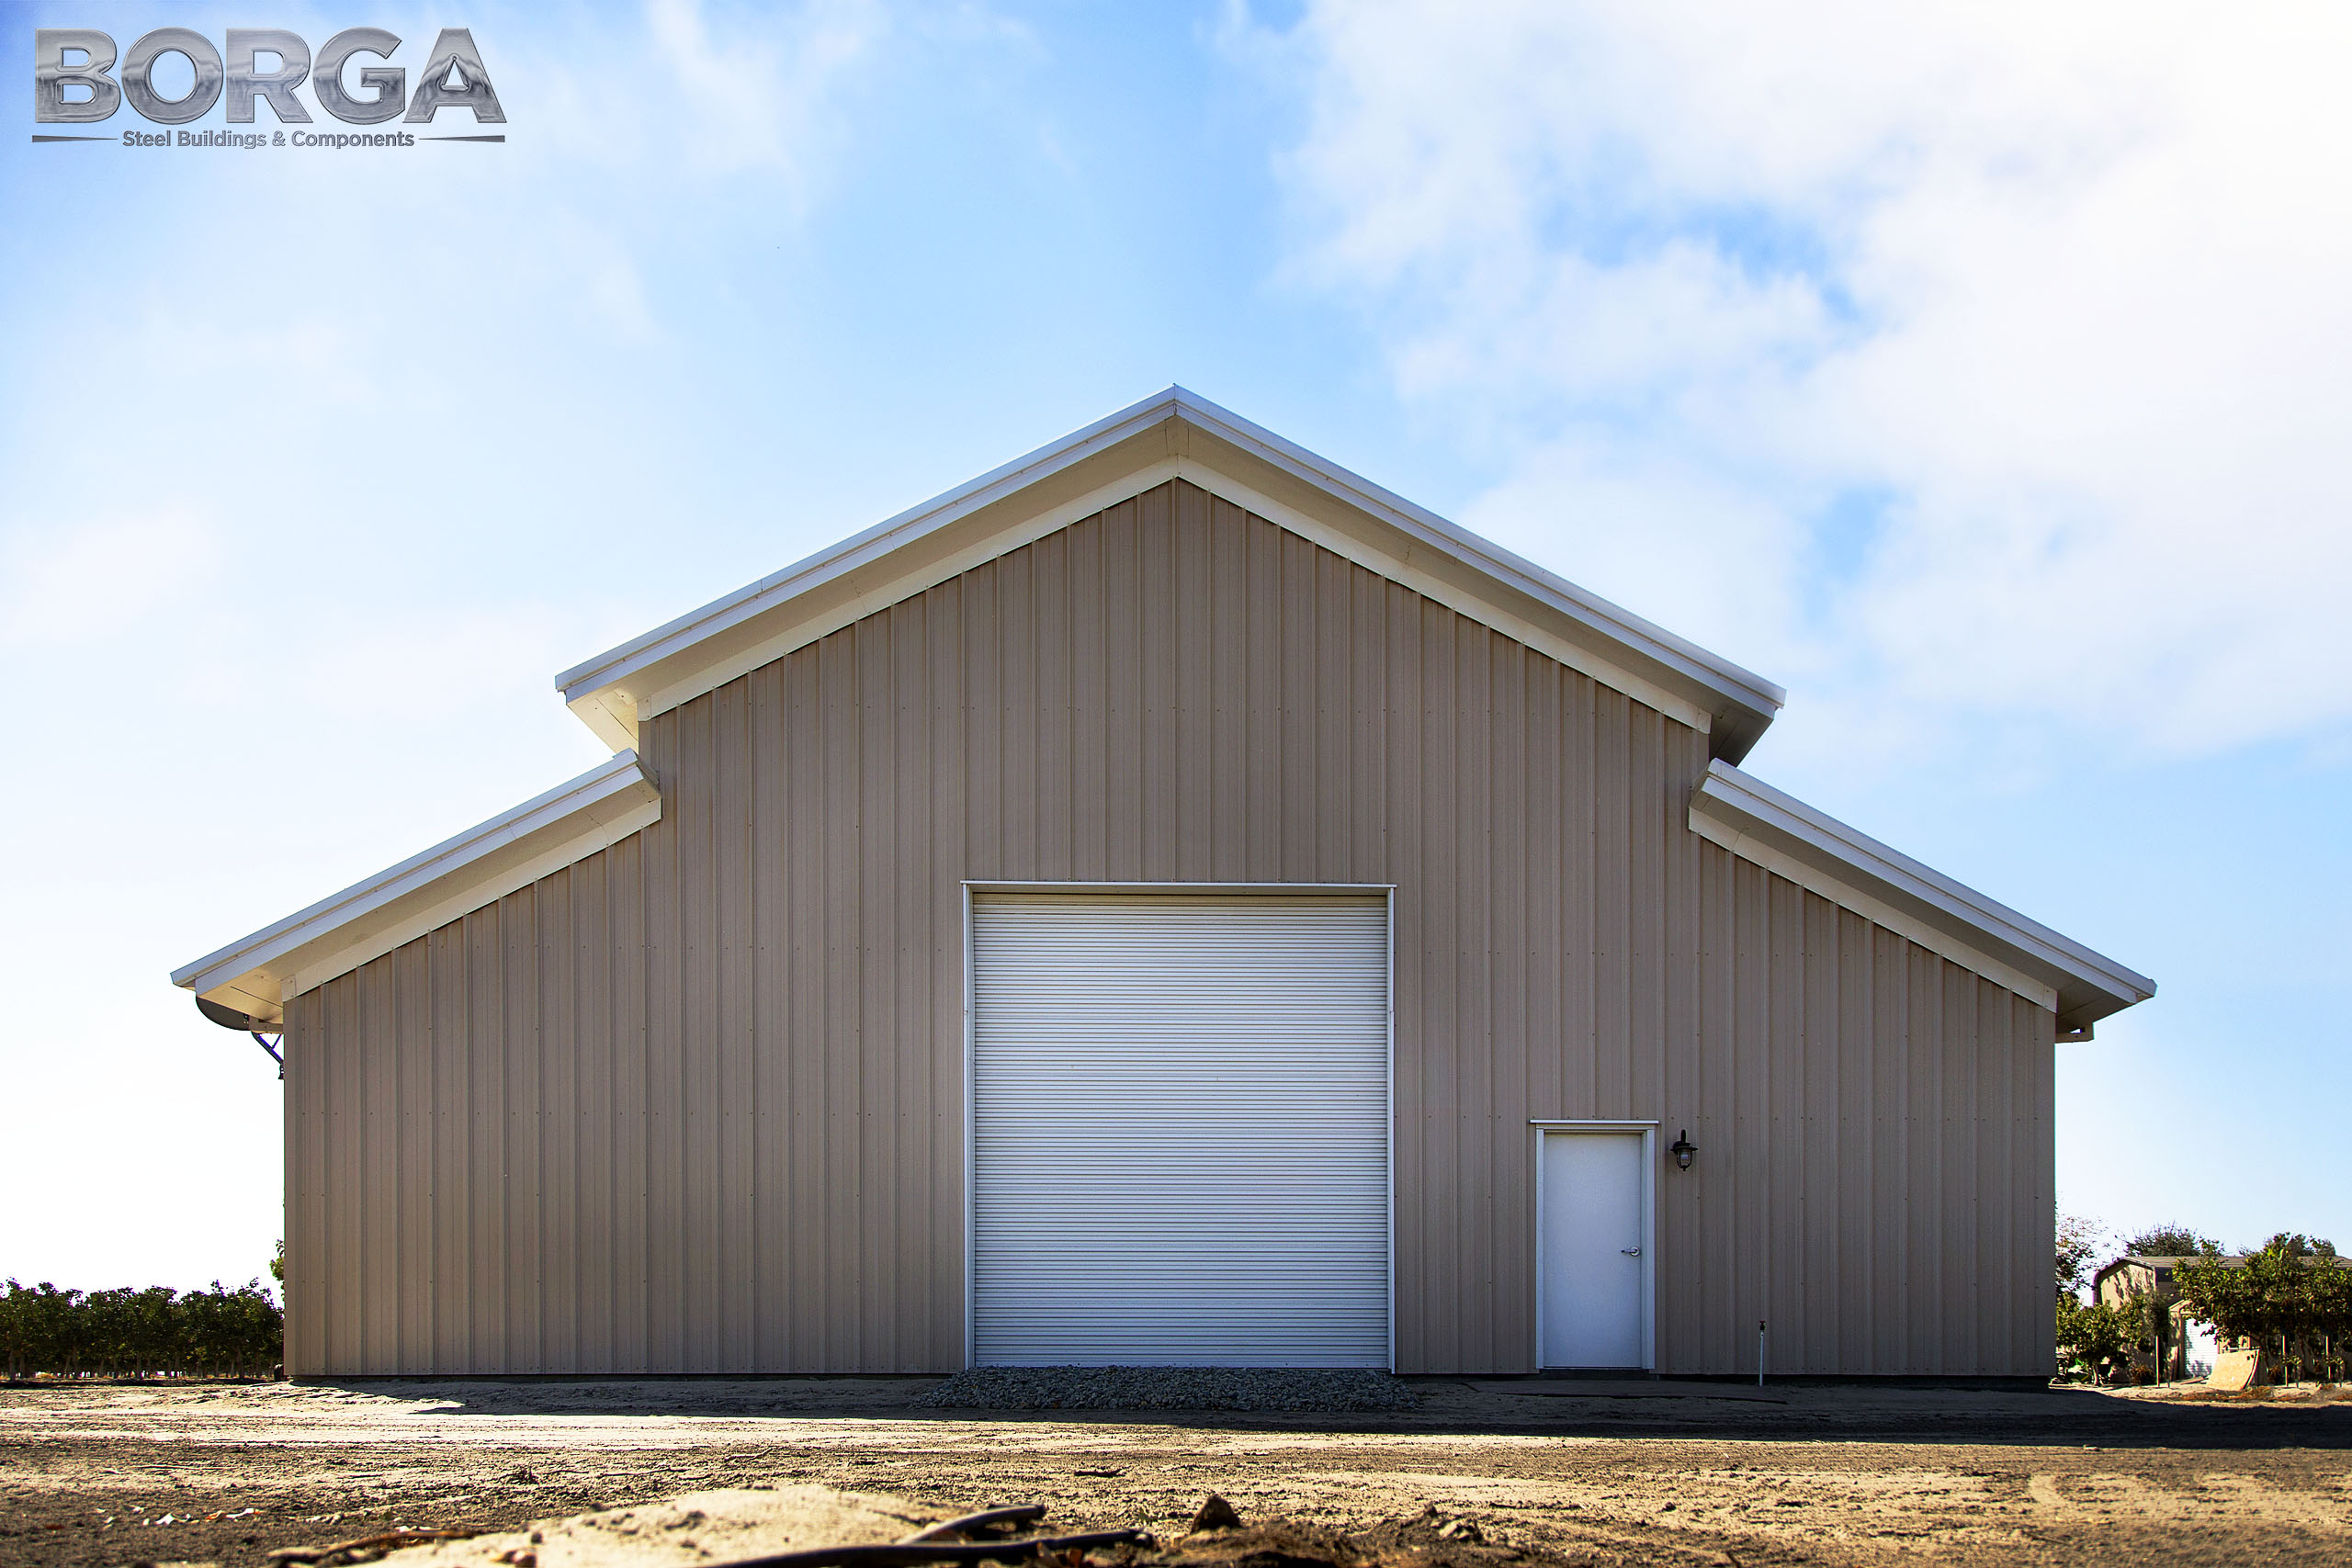 borga steel buildings components gilkey farms corcoran ca central valley metal agriculture tan white rca raised center aisle 2